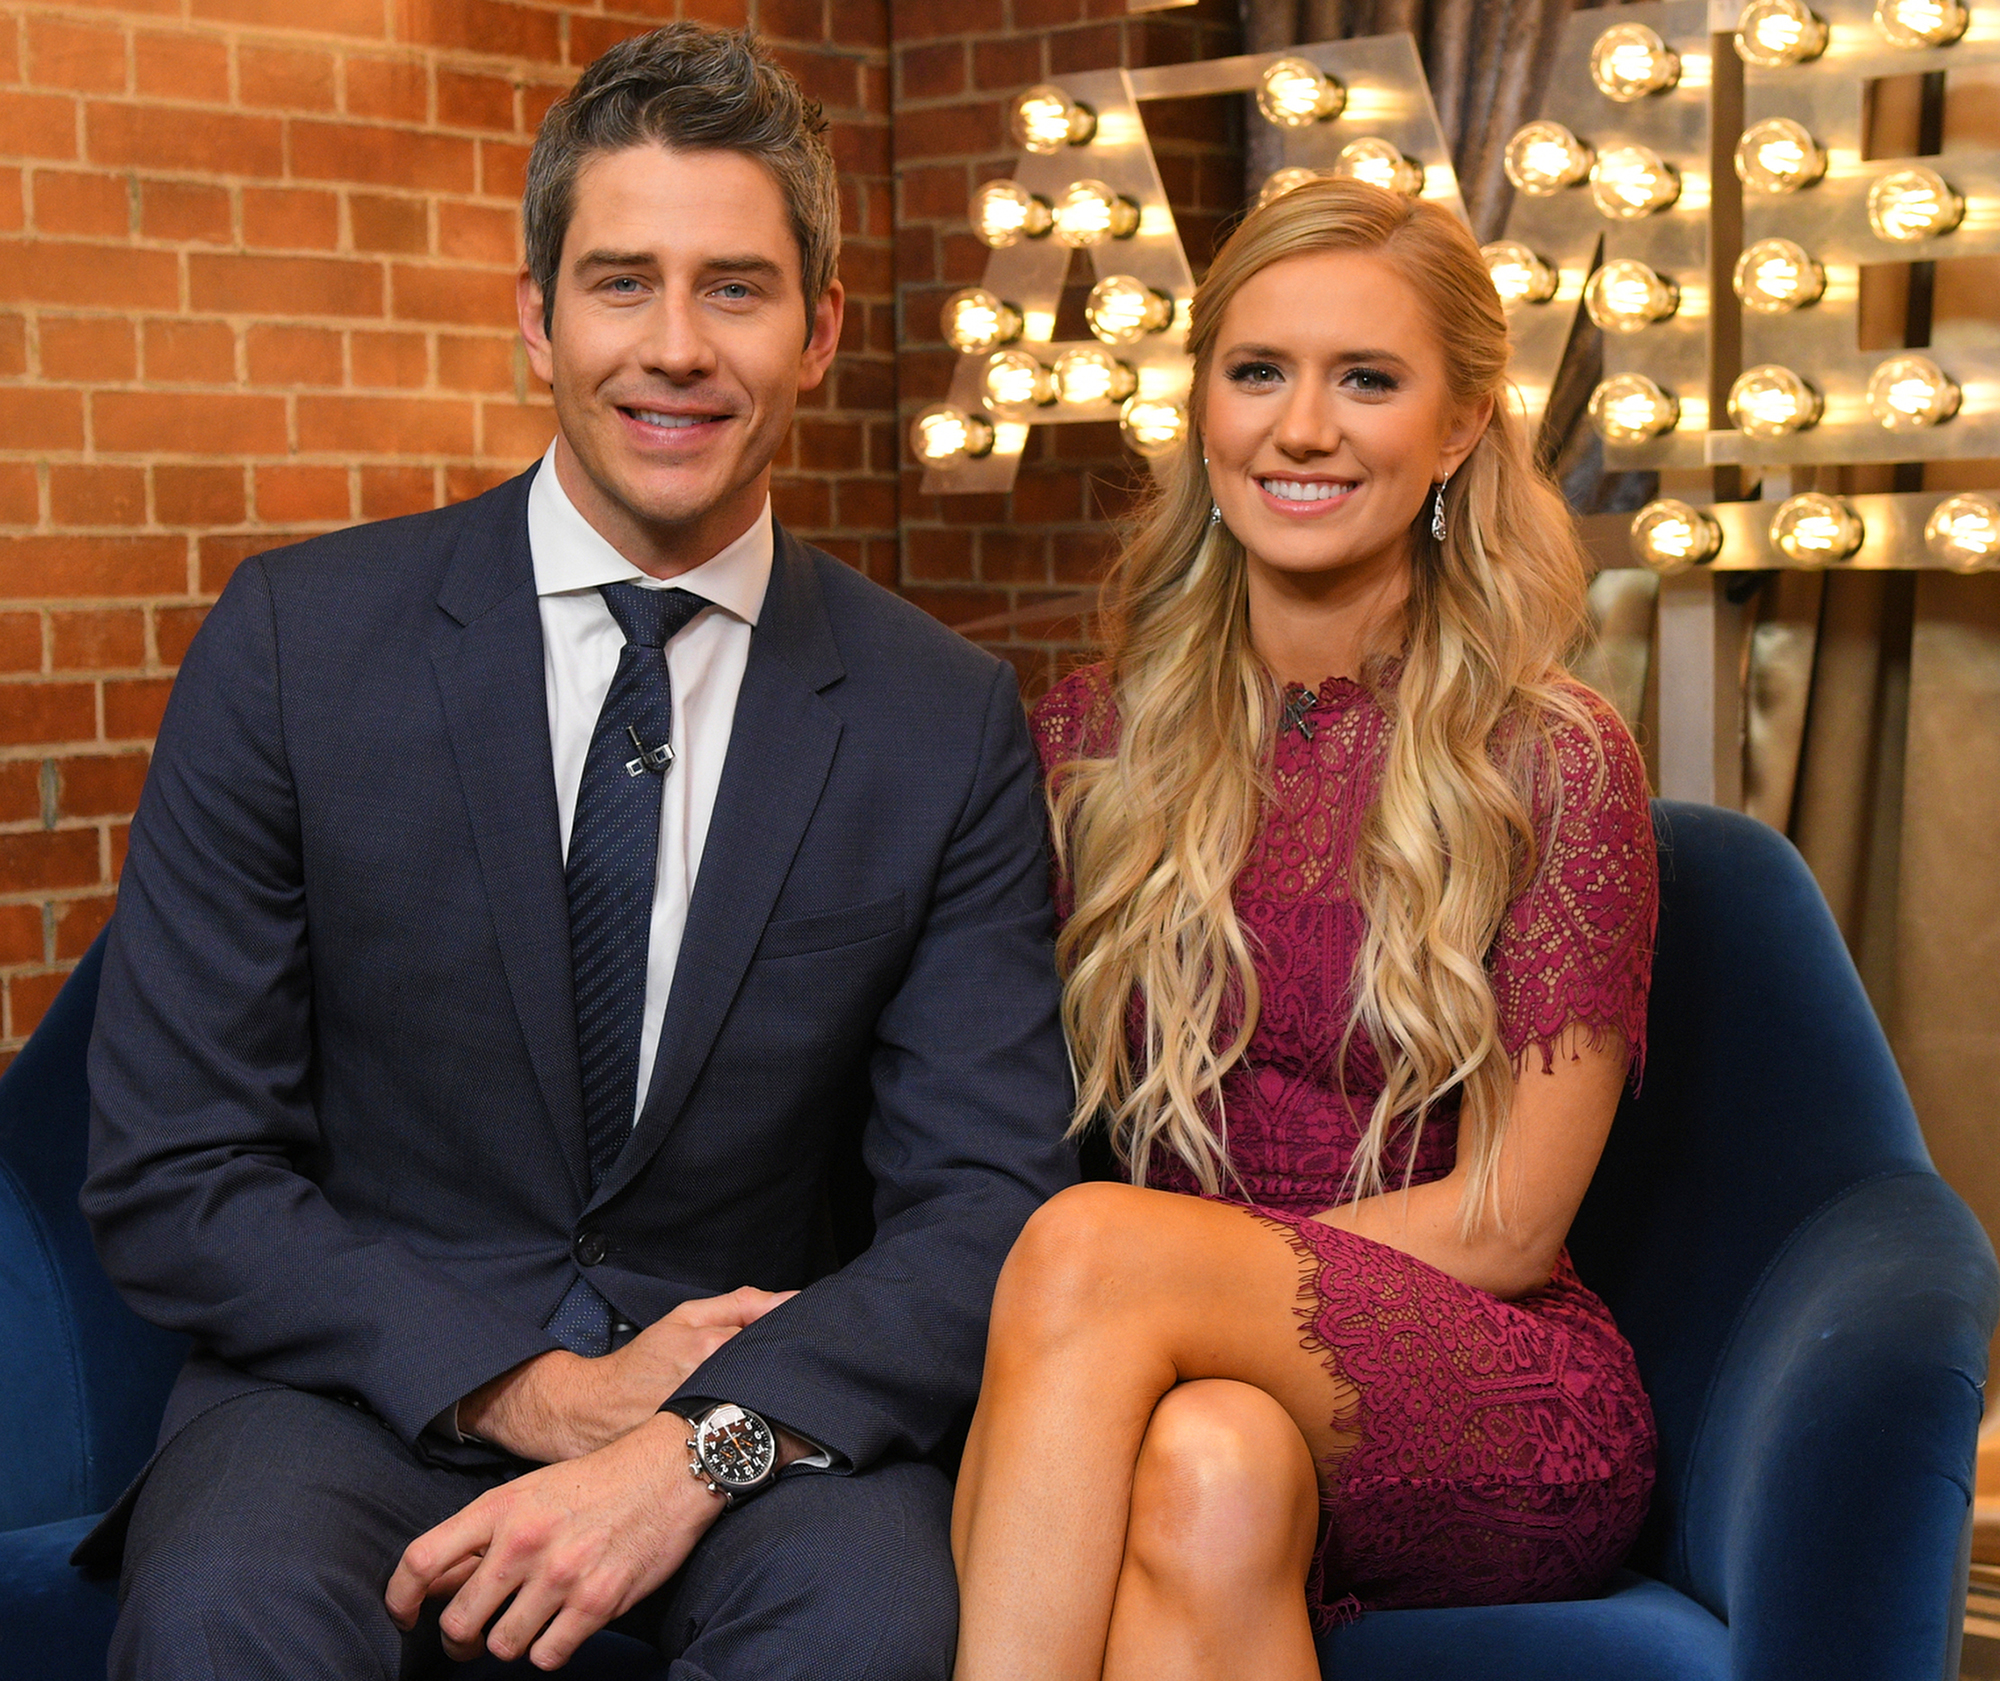 'The Bachelorette': Becca Revisits Controversial 'Bachelor' Breakup With Arie